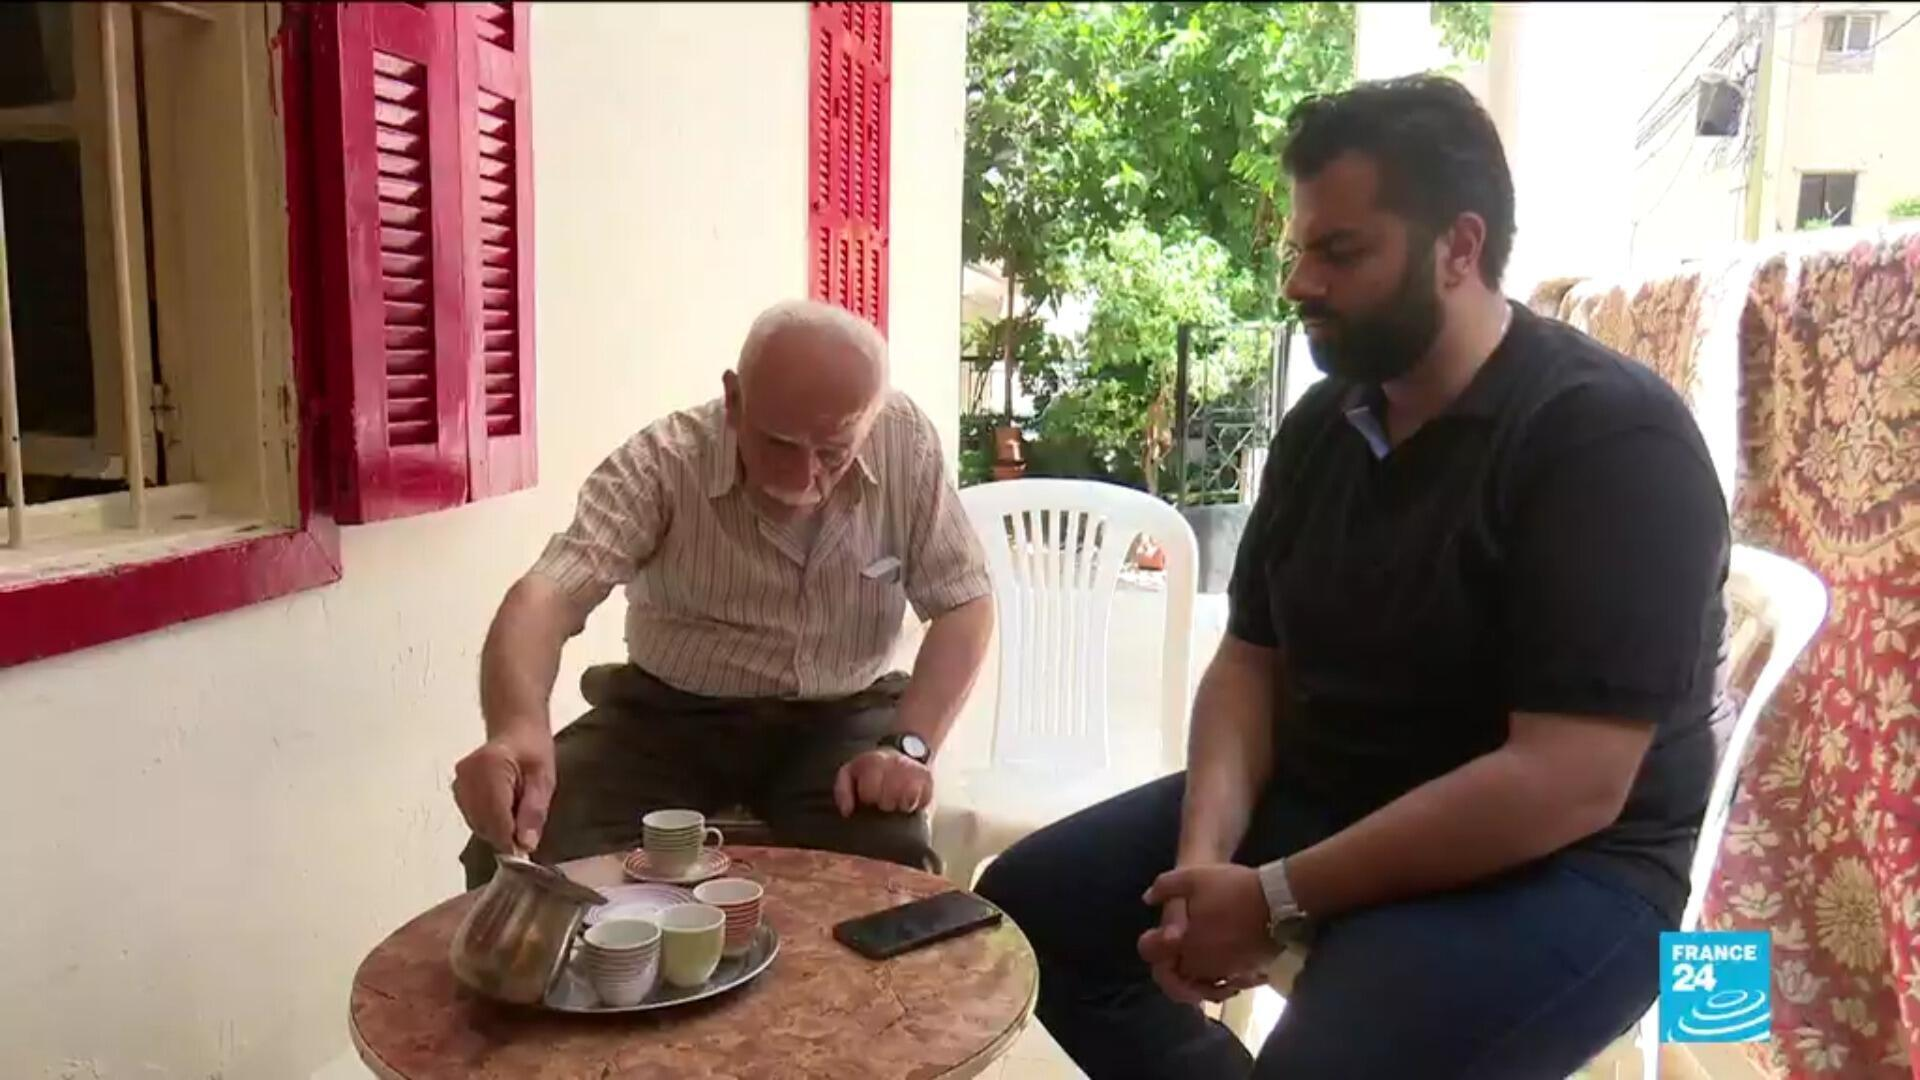 Georges Jassous (L) and his family have cut back on food purchases as the value of Lebanon's currency has fallen sharply.